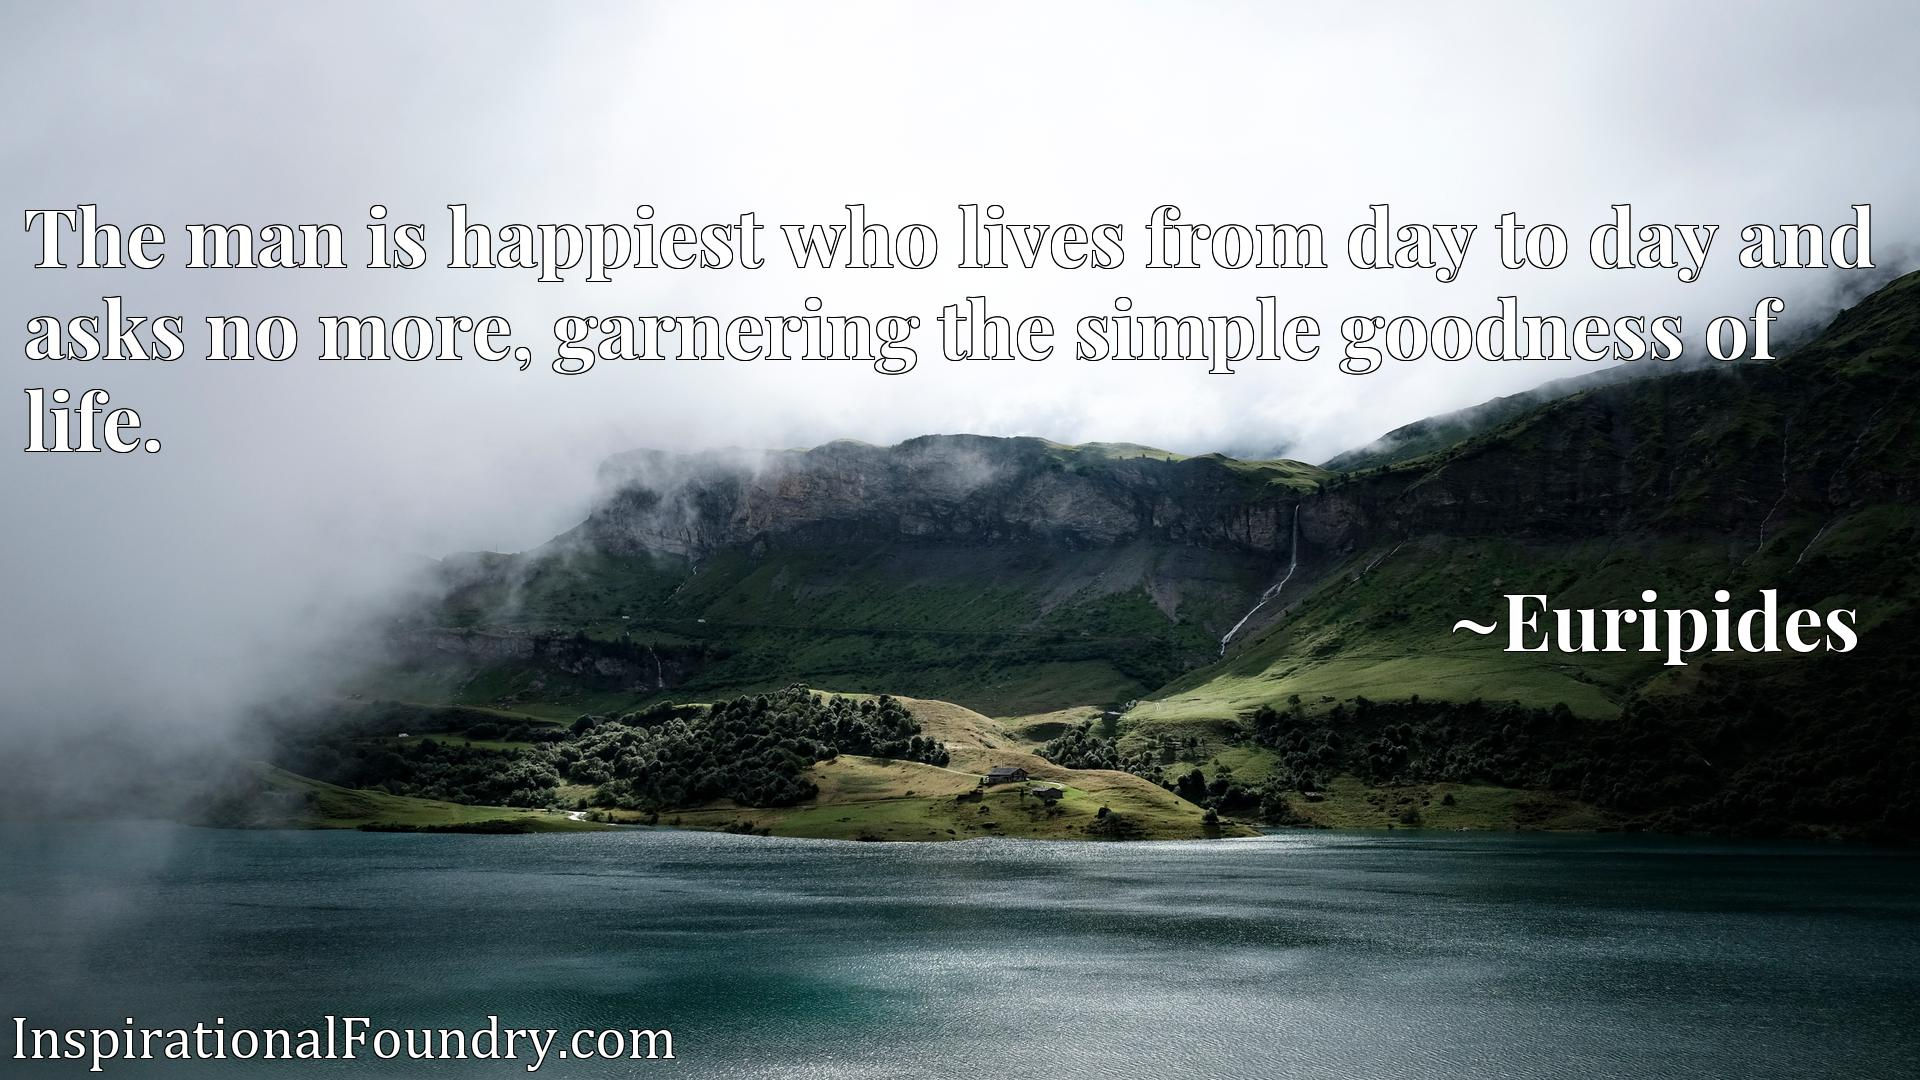 The man is happiest who lives from day to day and asks no more, garnering the simple goodness of life.